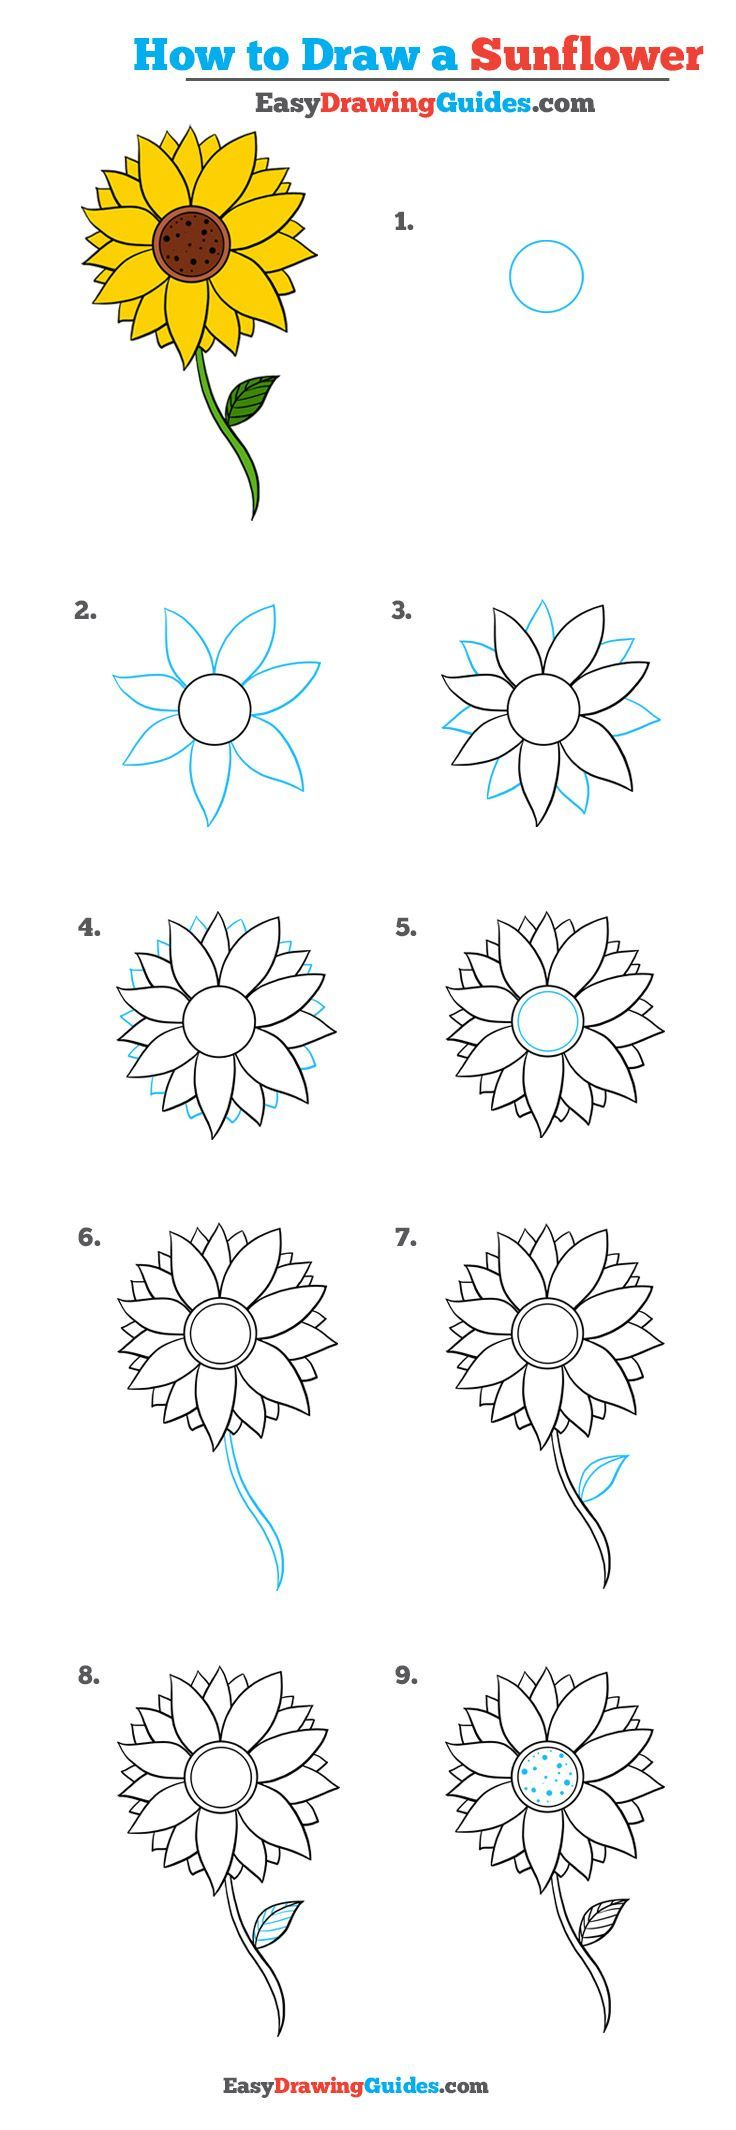 Learn How to Draw a Sunflower: Easy Step-by-Step Drawing Tutorial for Kids and Beginners. #sunflower #drawing #tutorial. See the full tutorial at https://easydrawingguides.com/how-to-draw-a-sunflower-really-easy-drawing-tutorial/